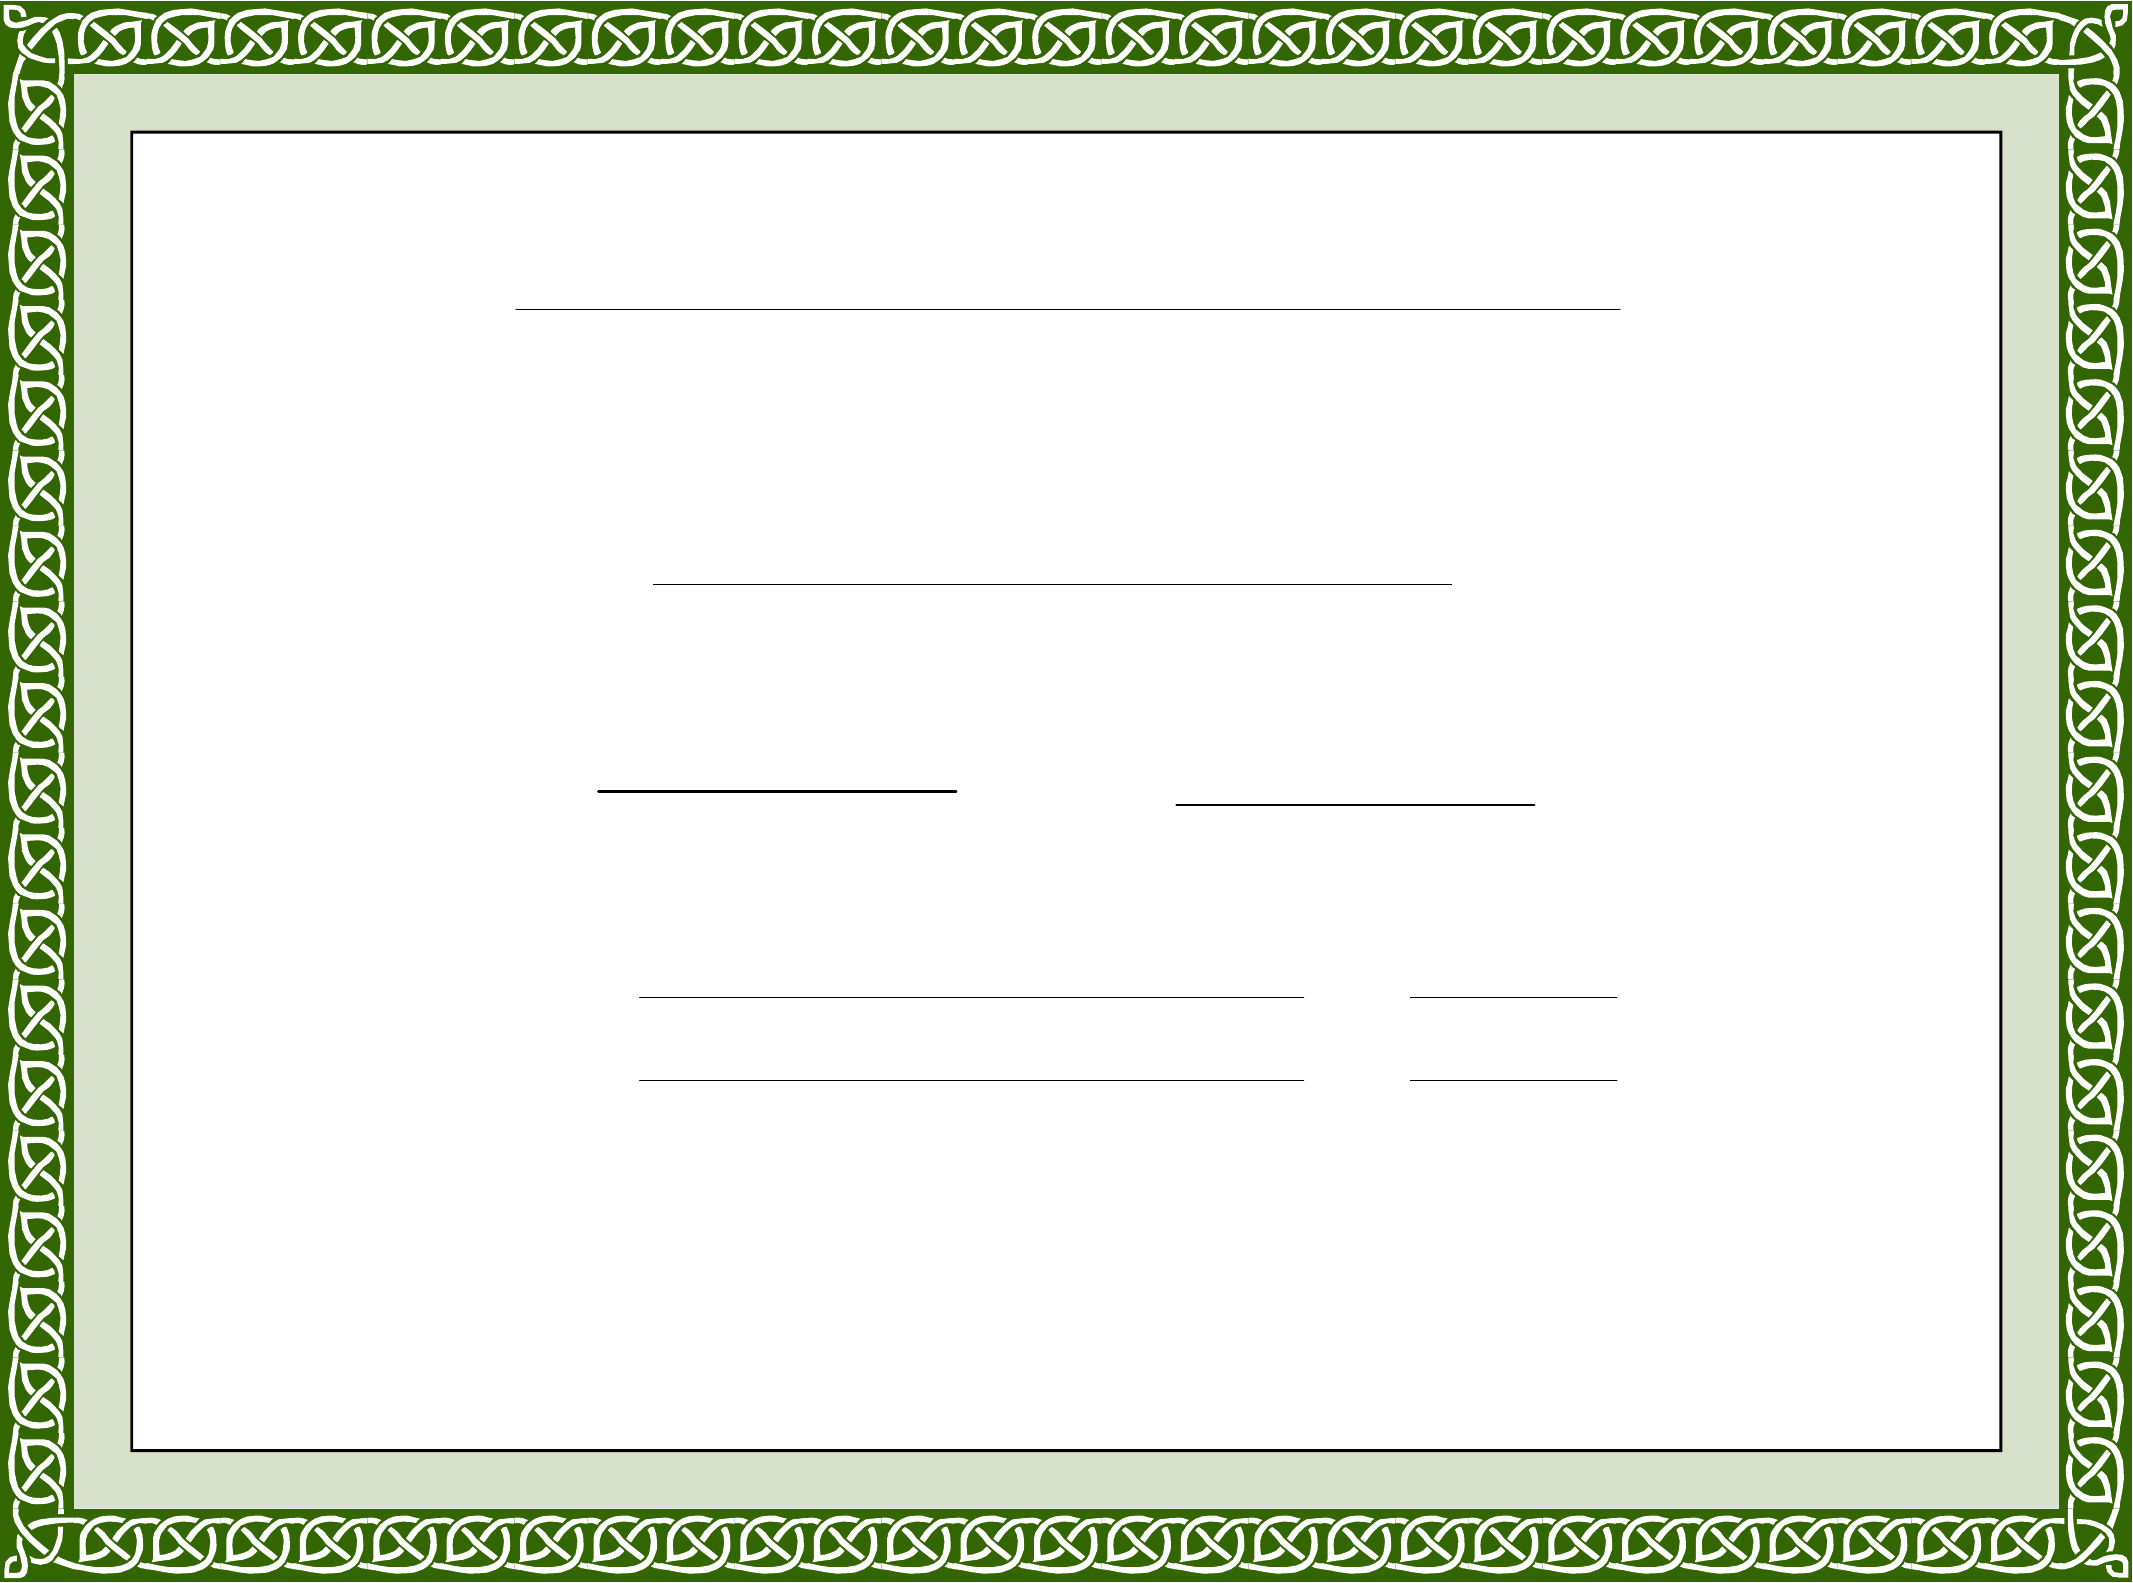 Sample Training Completion Certificate Template Free Download Regarding Free Training Completion Certificate Templates